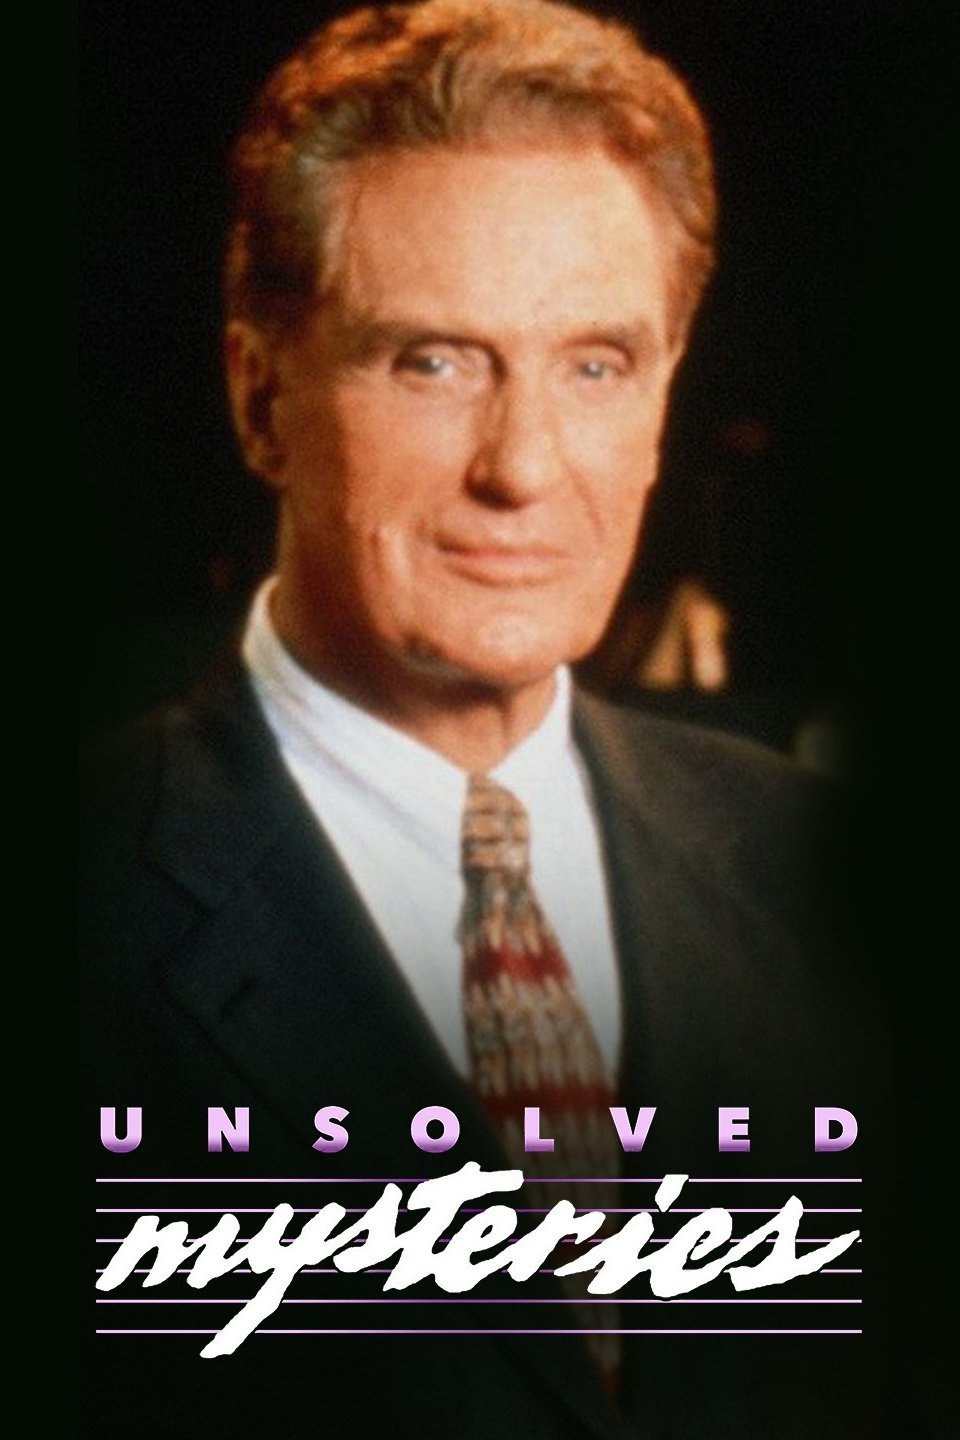 Watch Unsolved Mysteries (1988) Online for Free | The Roku Channel